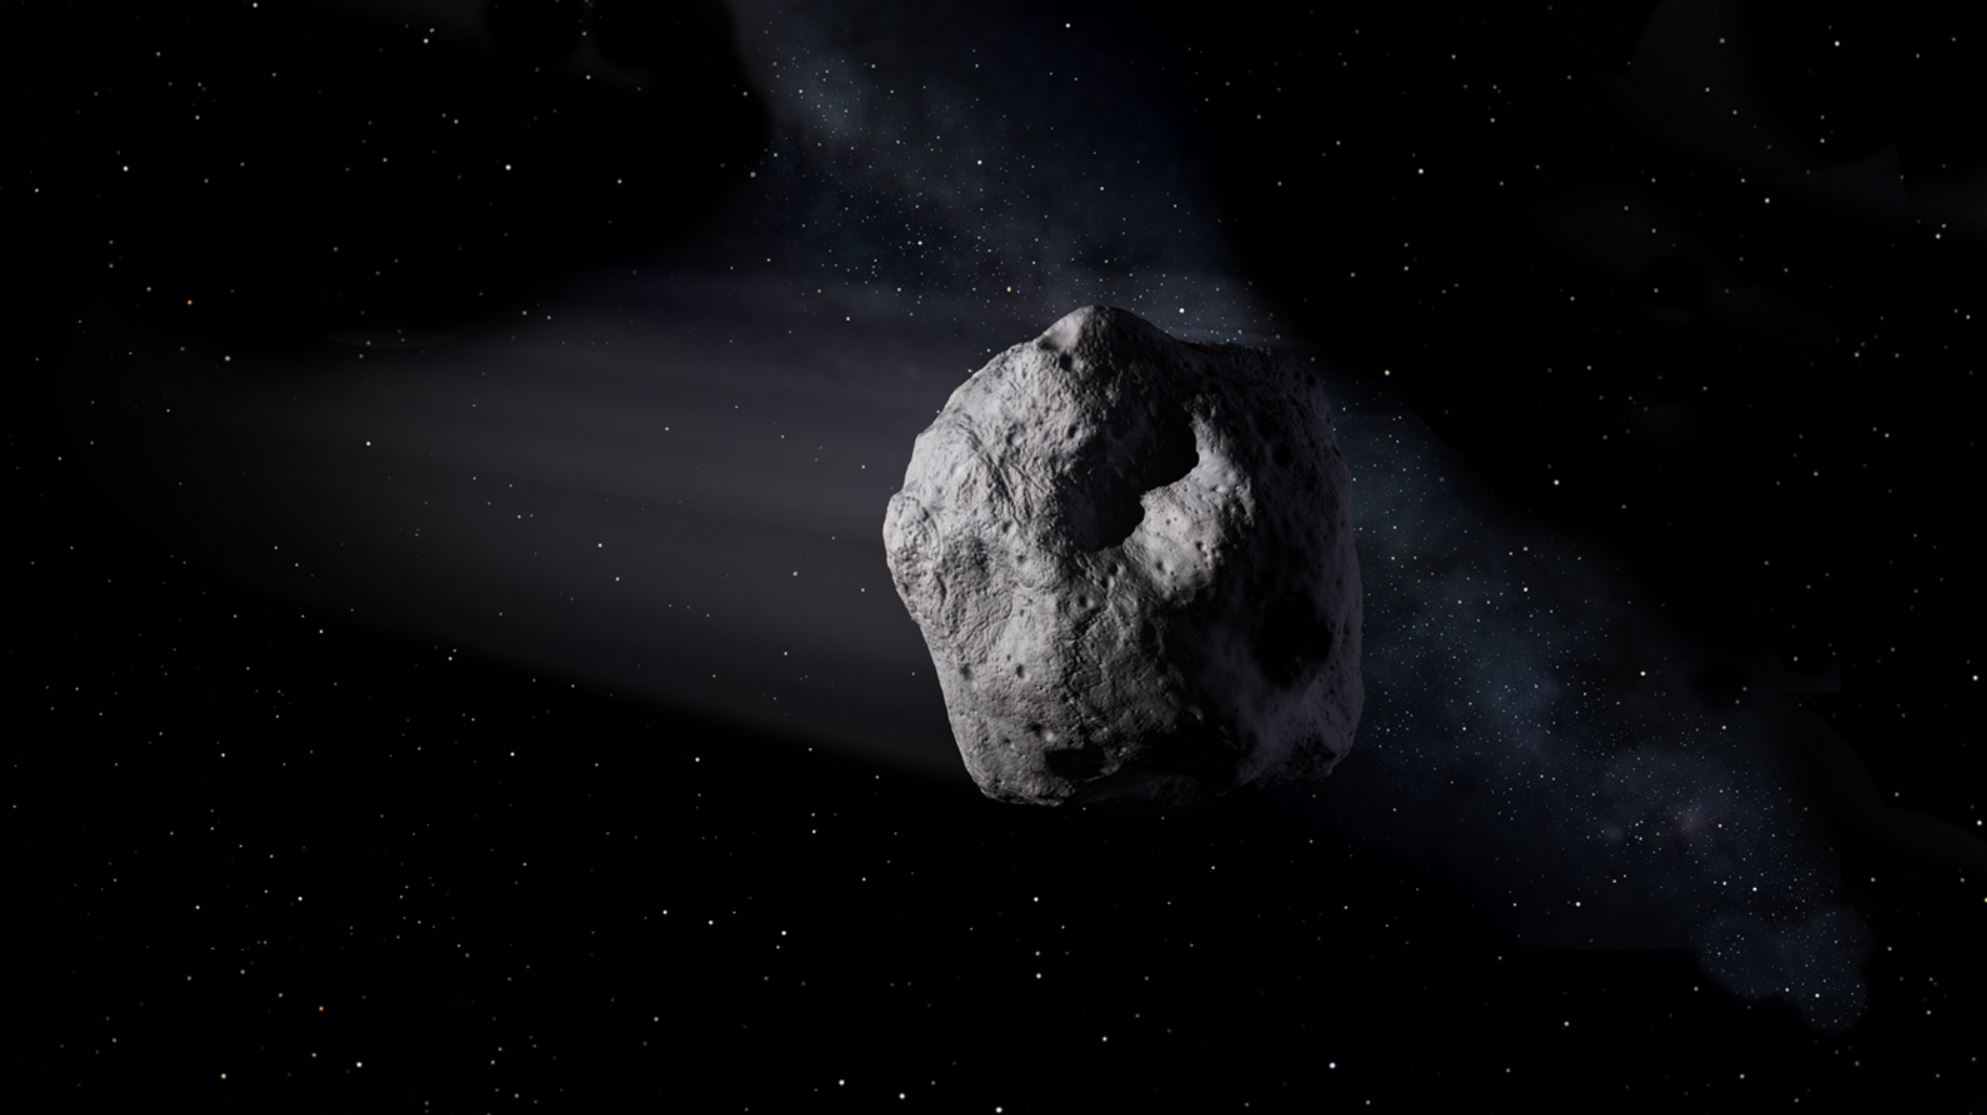 Artist's impression of an asteroid - Image Credit: NASA / JPL